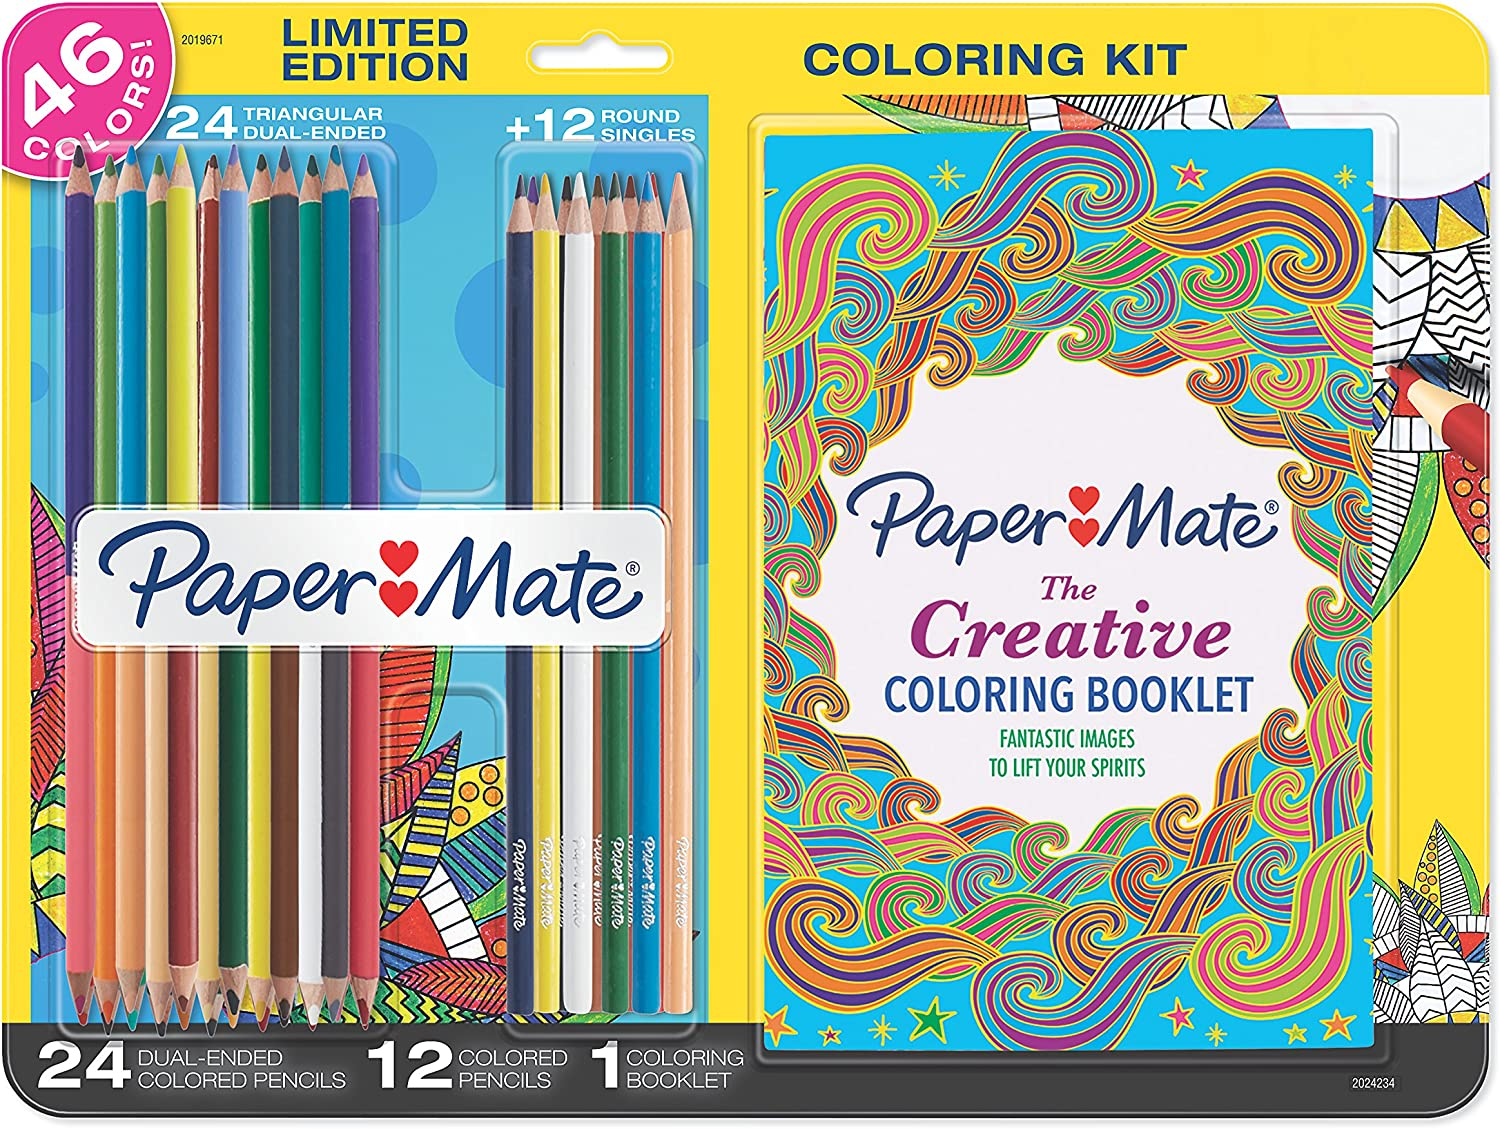 Paper Mate Colored Pencils Adult Coloring Kit, Single and Dual Ended, Assorted Colors with Creative Adult Coloring Booklet, 37 Count